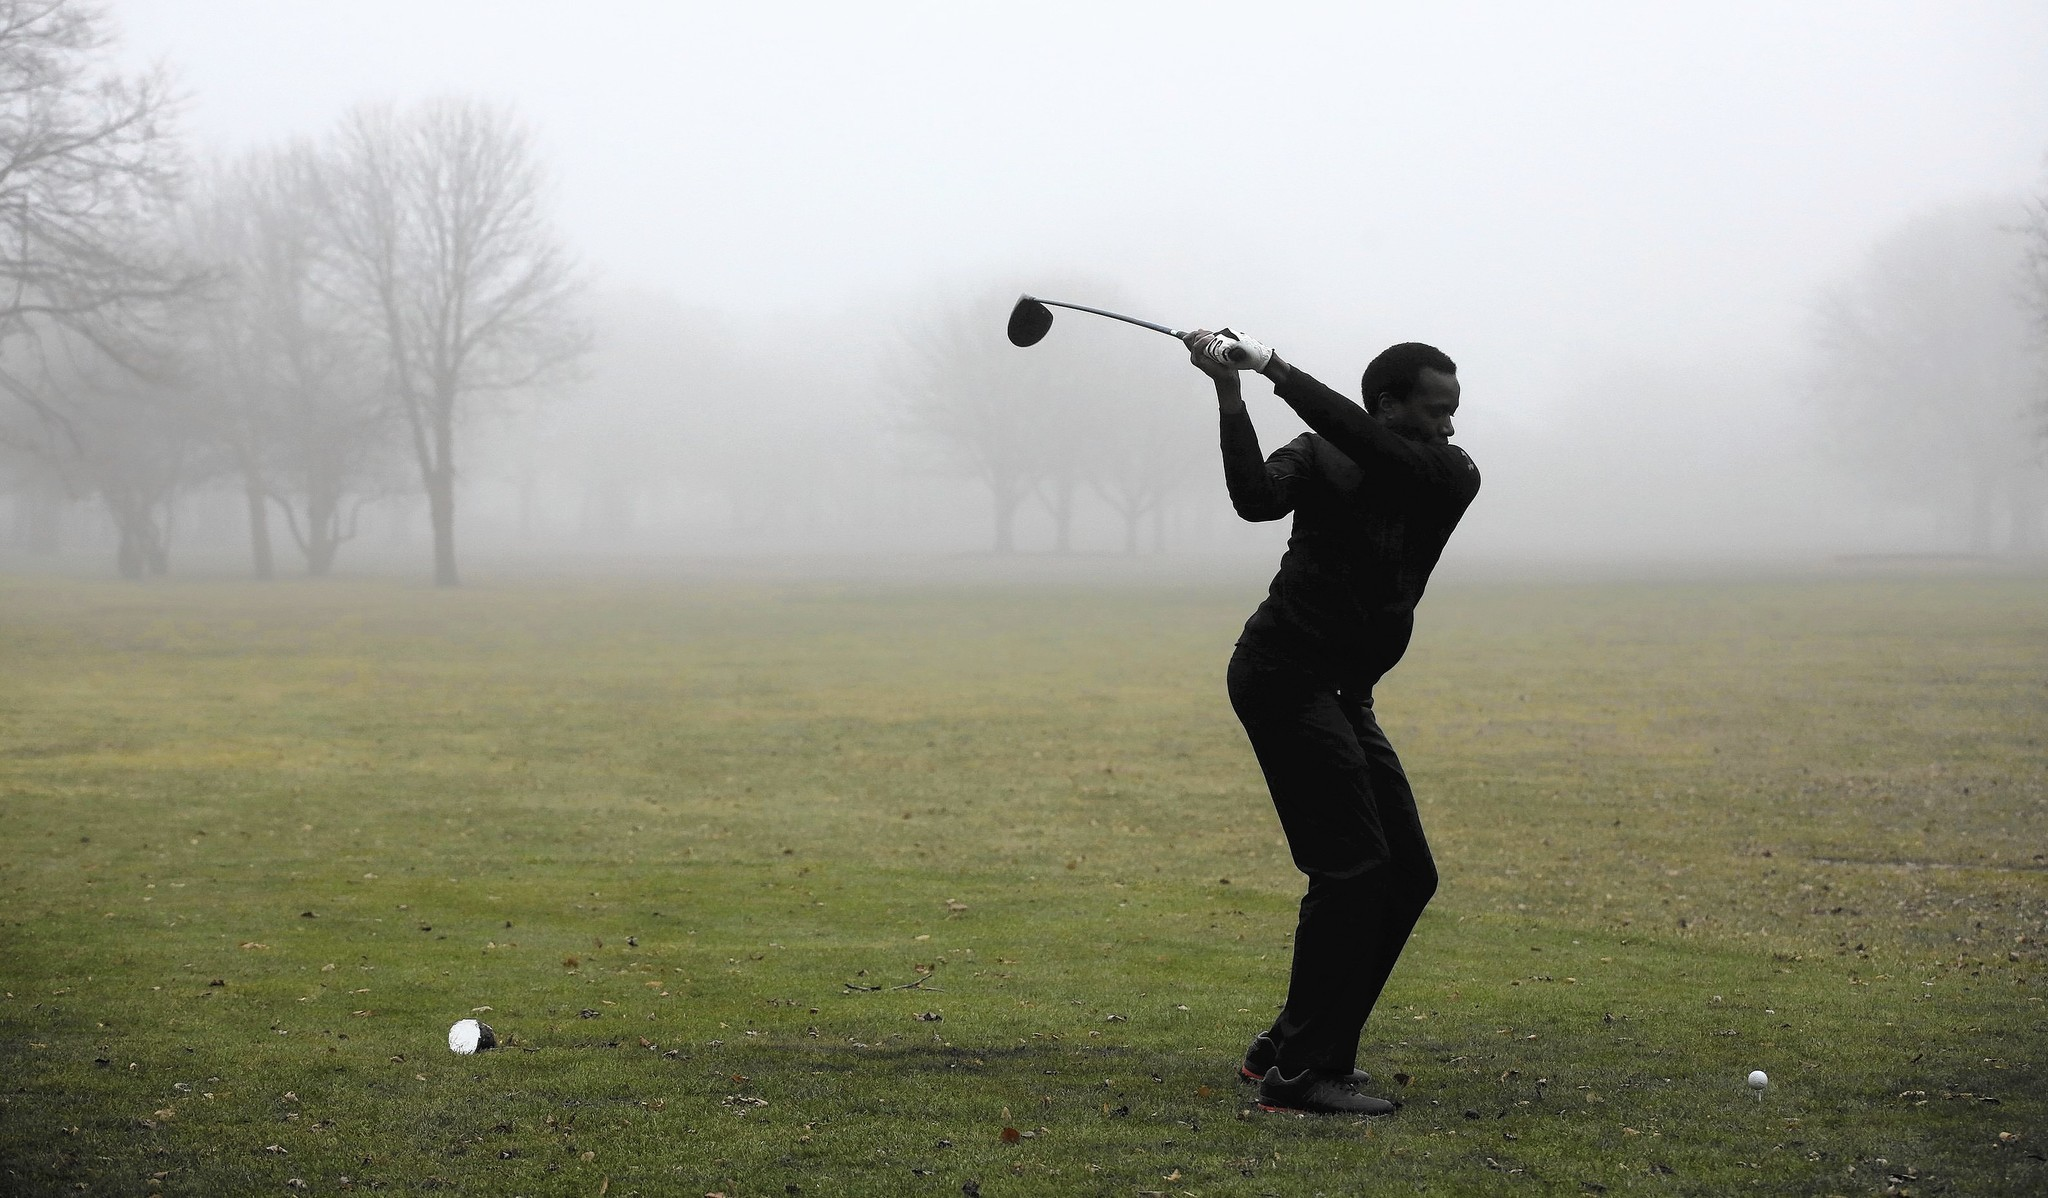 Elite South Side golf course by Tiger Woods has skeptics, raises questions